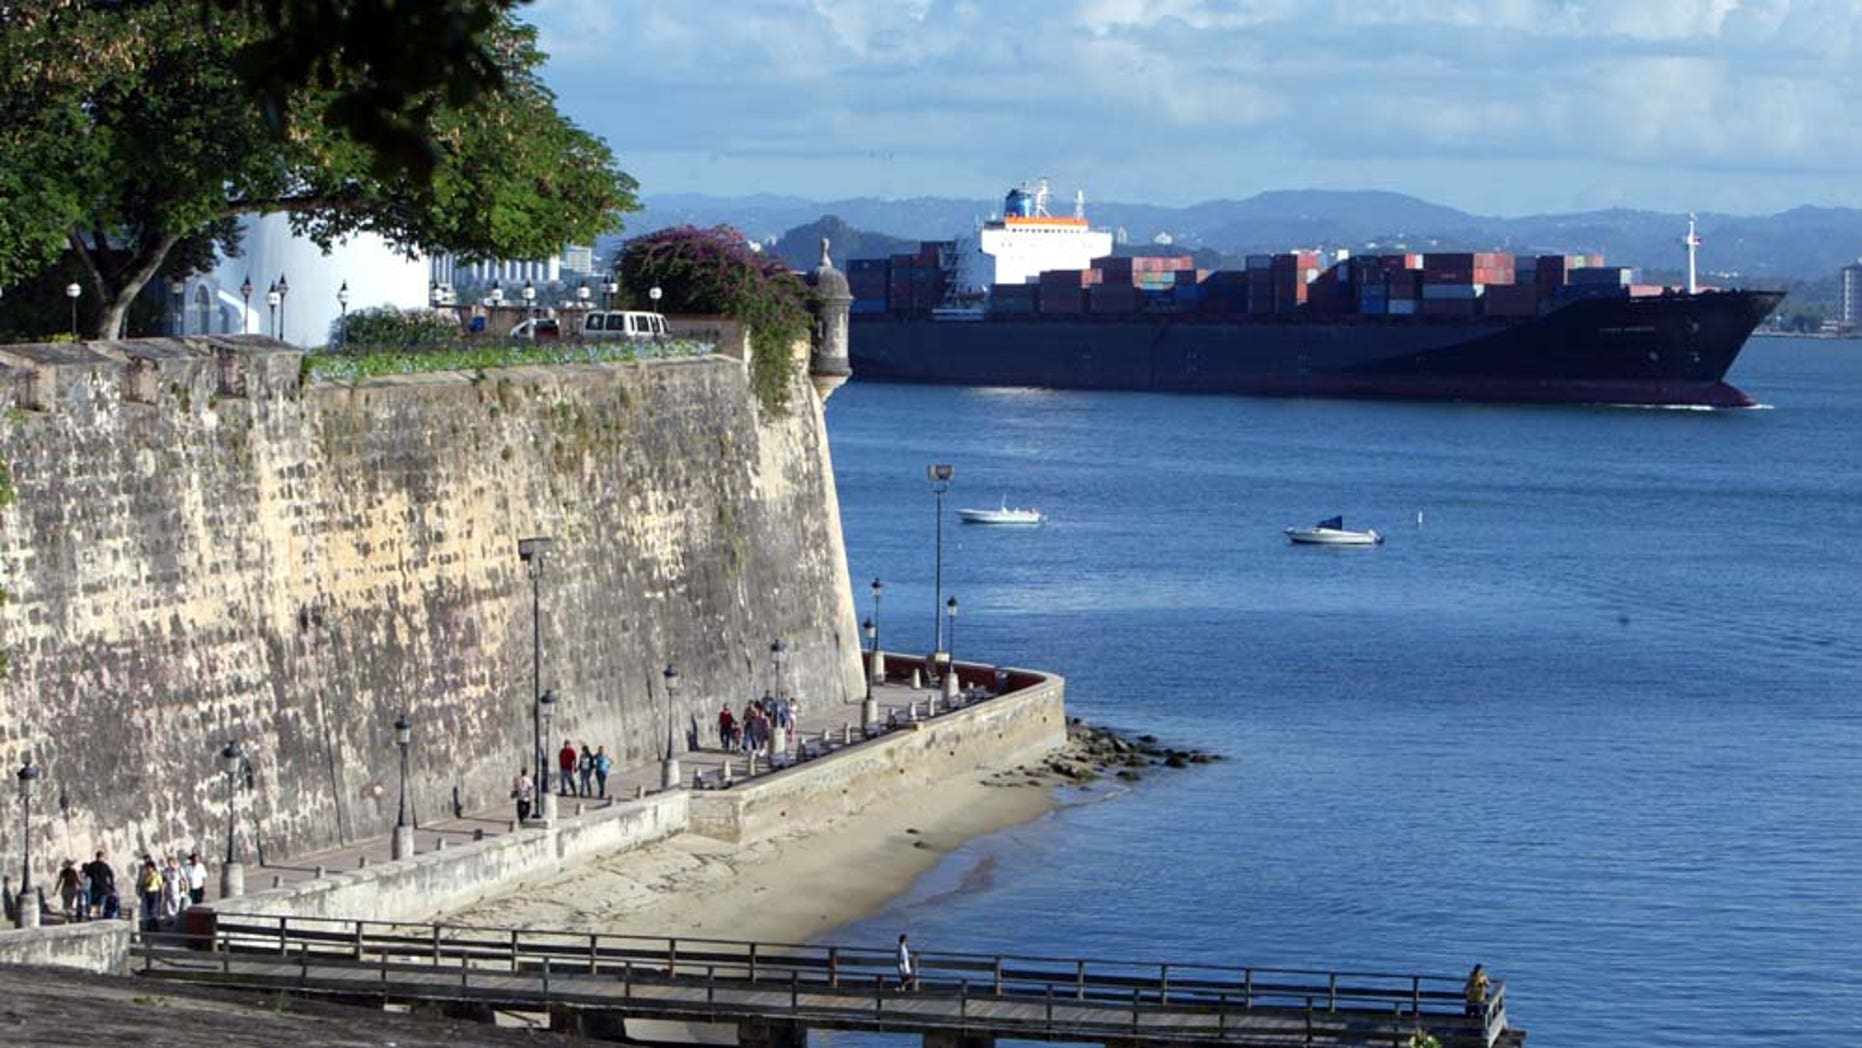 SAN JUAN, PUERTO RICO- APRIL 26: A ship passes past part of the wall that makes up La Fortaleza April 26, 2004 in Old San Juan, the original capital city of San Juan, Puerto Rico. Originally built as a fortress in 1533, it proved of limited military value but ideal for housing governors and dignitaries.The old city is a historic district of seven square blocks made up of ancient buildings and colonial homes, massive stone walls and vast fortifications, sunny parks and cobblestoned streets.  (Photo by Joe Raedle/Getty Images)